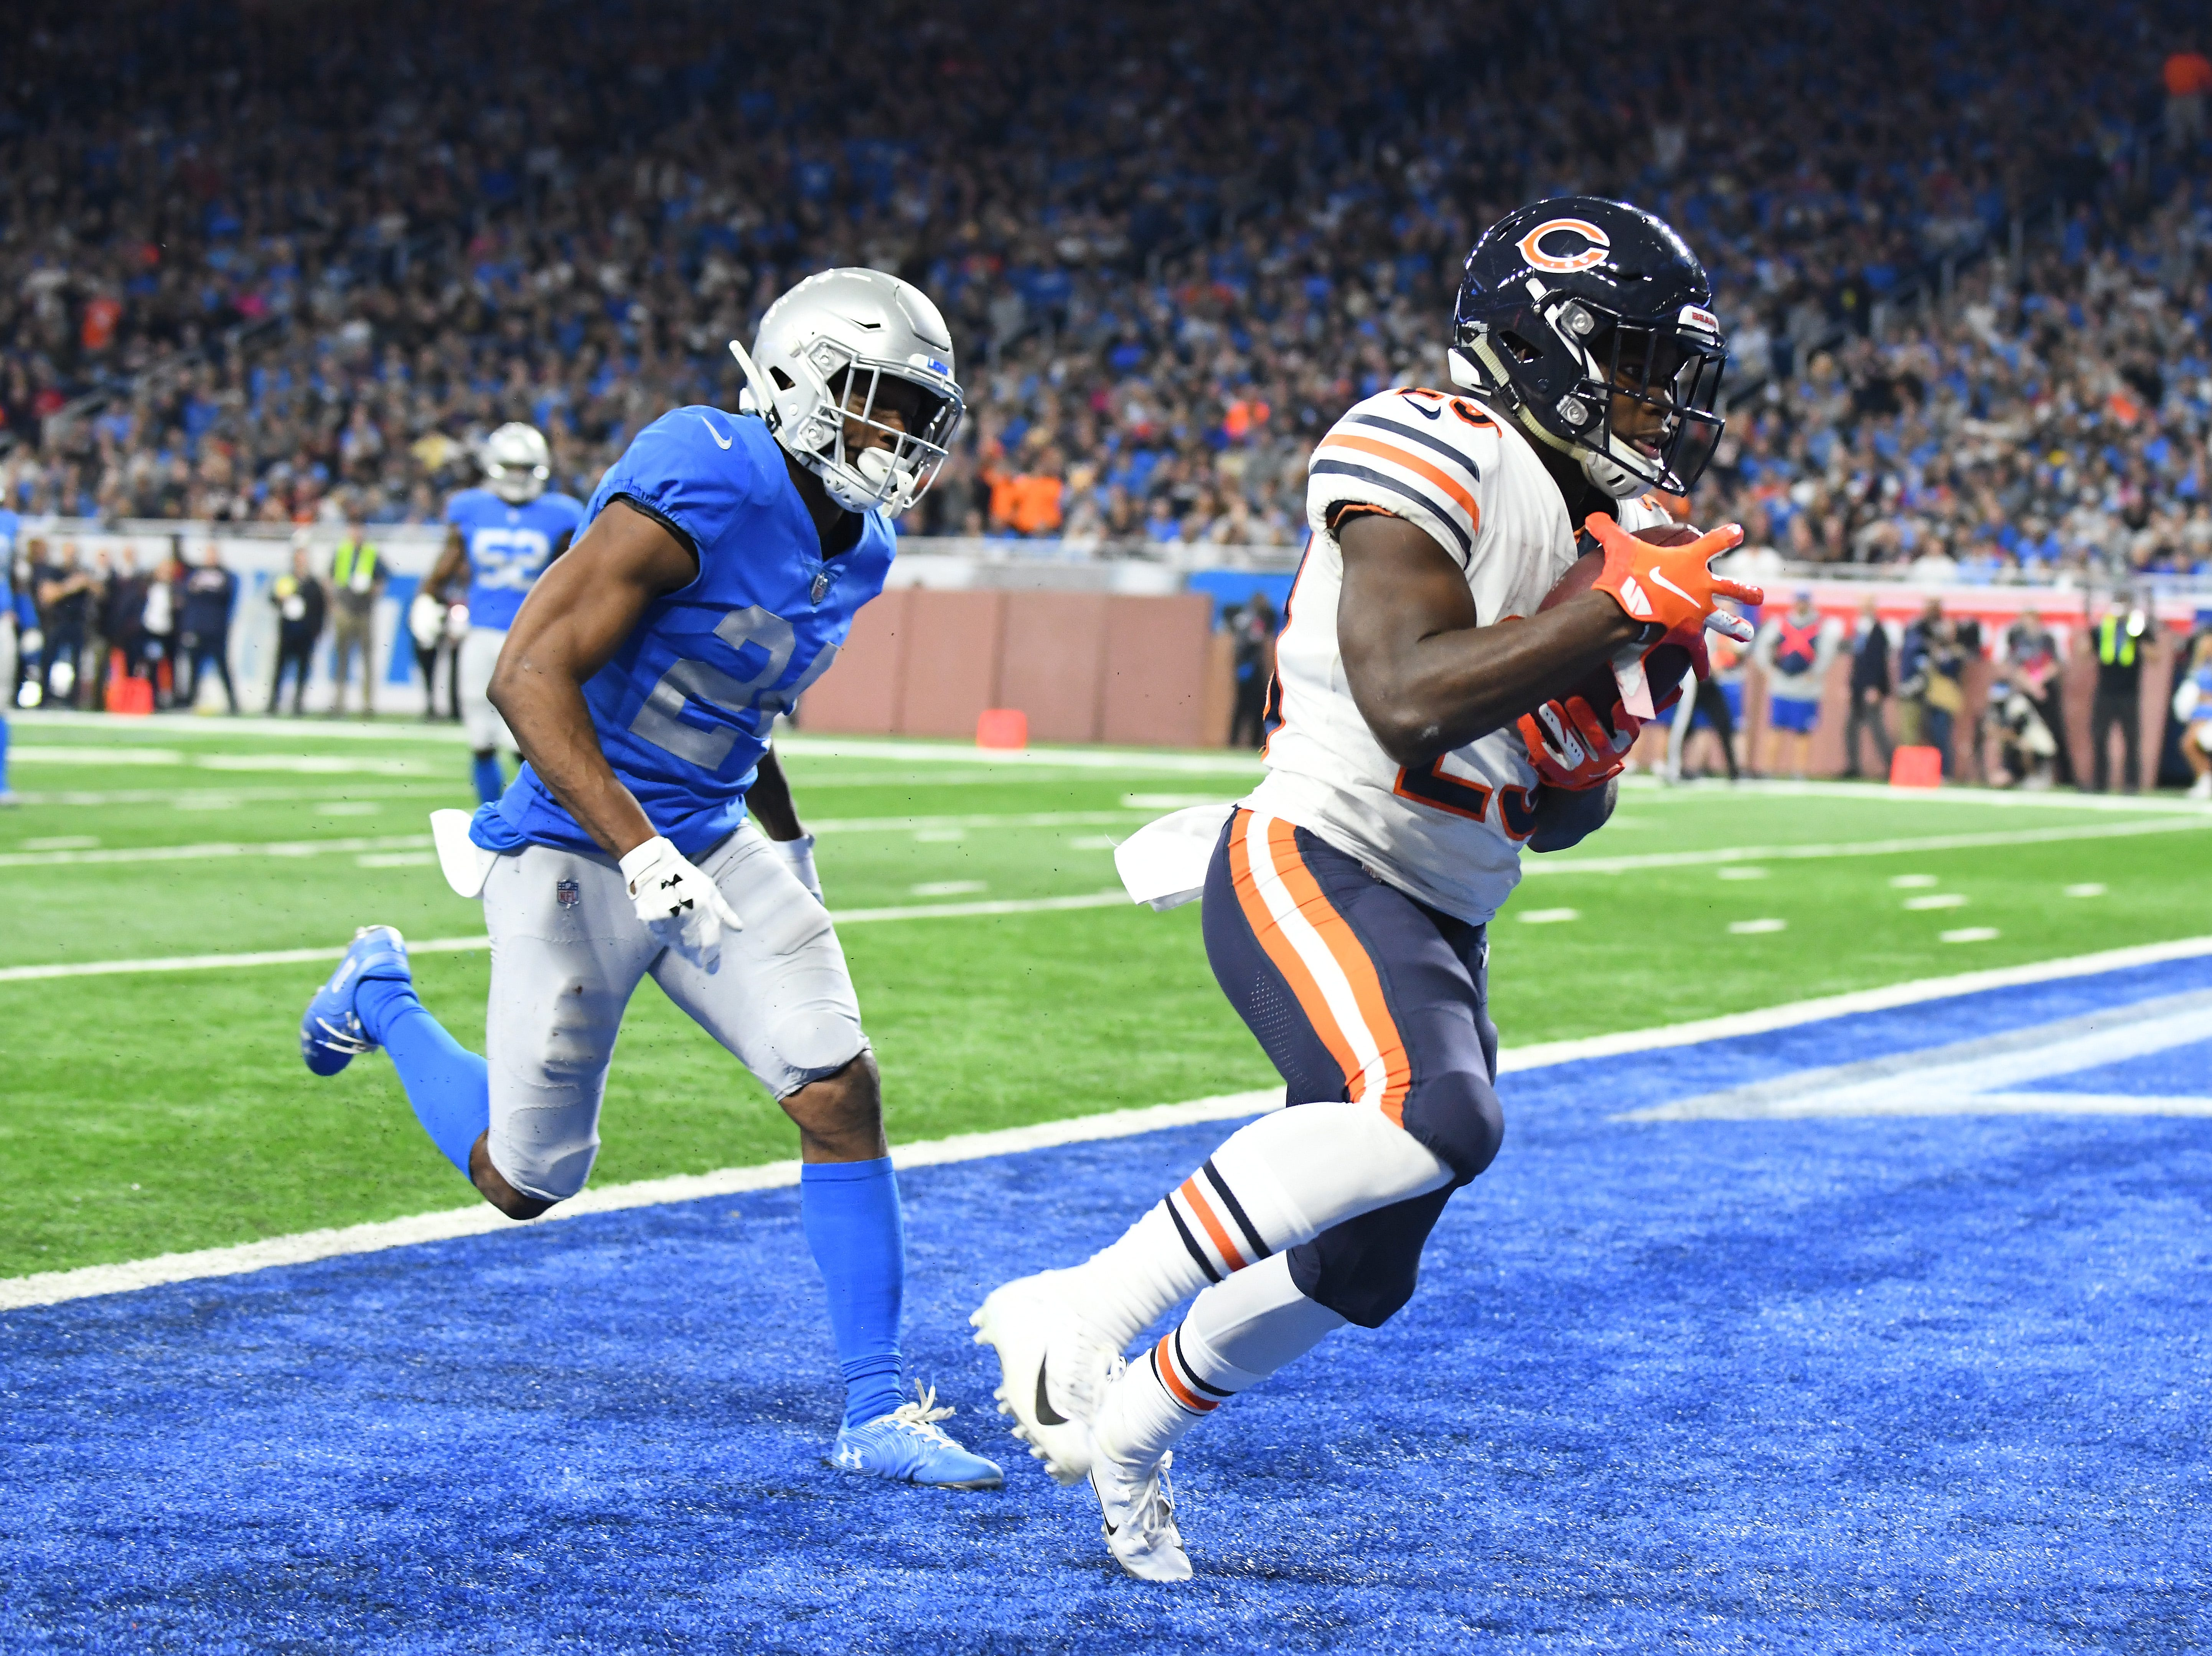 Bears' Tarik Cohen goes into the end zone after a reception with Lions' Nevin Lawson defending in the fourth quarter.